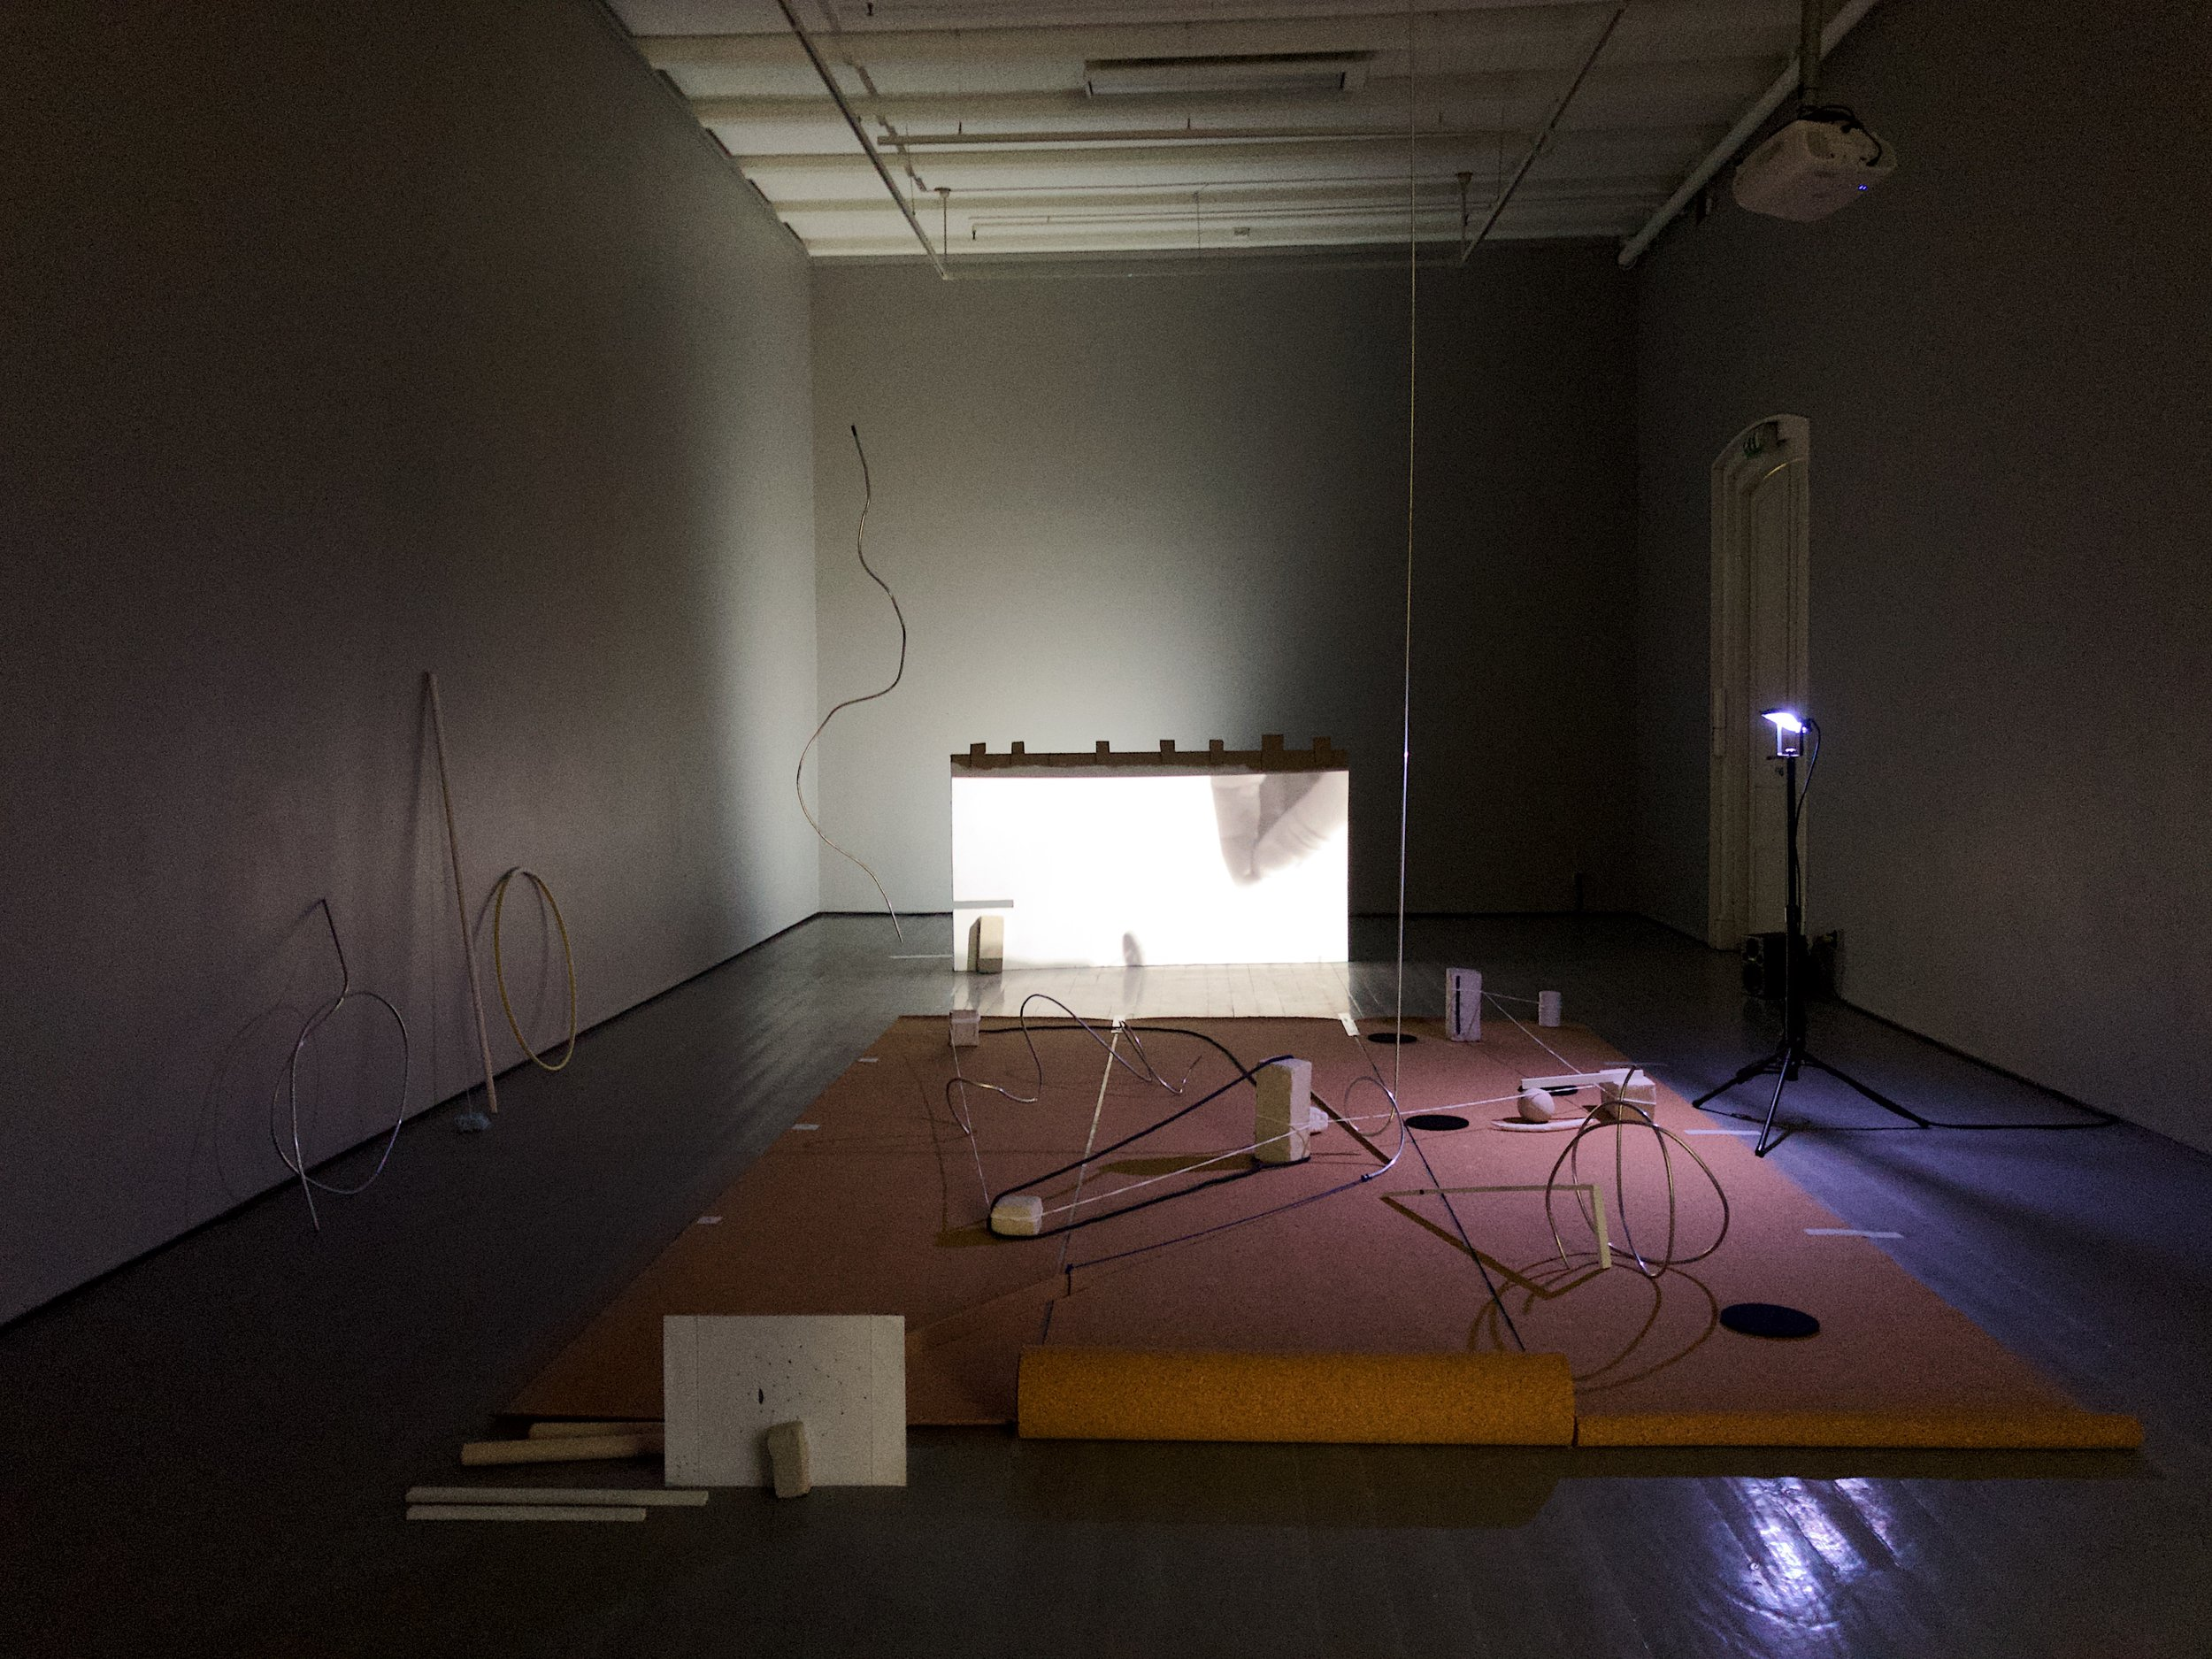 Julie Whiid Cetti (MA): When the Drums Hit the Ear, the Lines Start to Bend (2019). Mixed media and performance. Photo: Hilde Sørstrøm